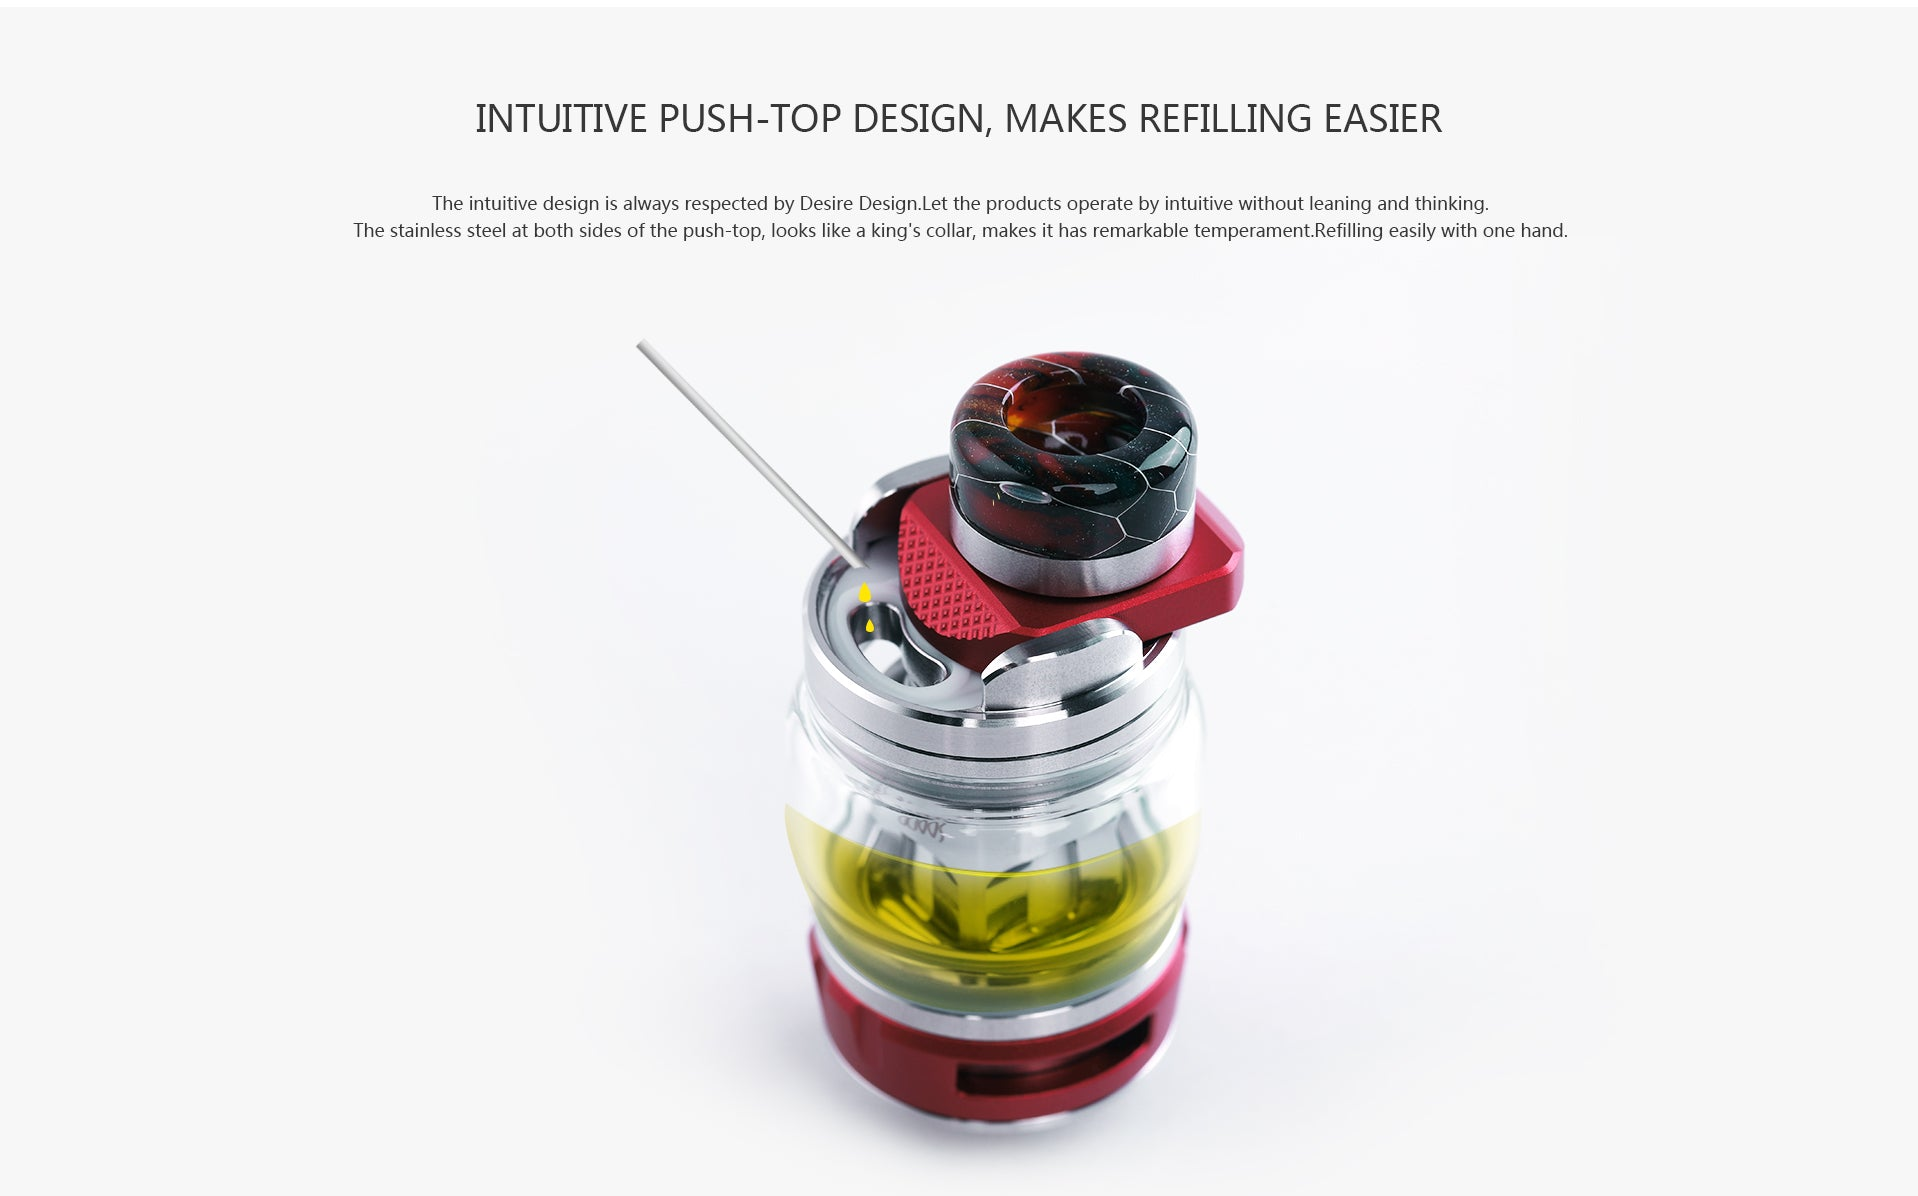 4.3ml E-Juice capacity Large capacity storage tank,reduces the number of E-Juice injections and makes VAPE last longer